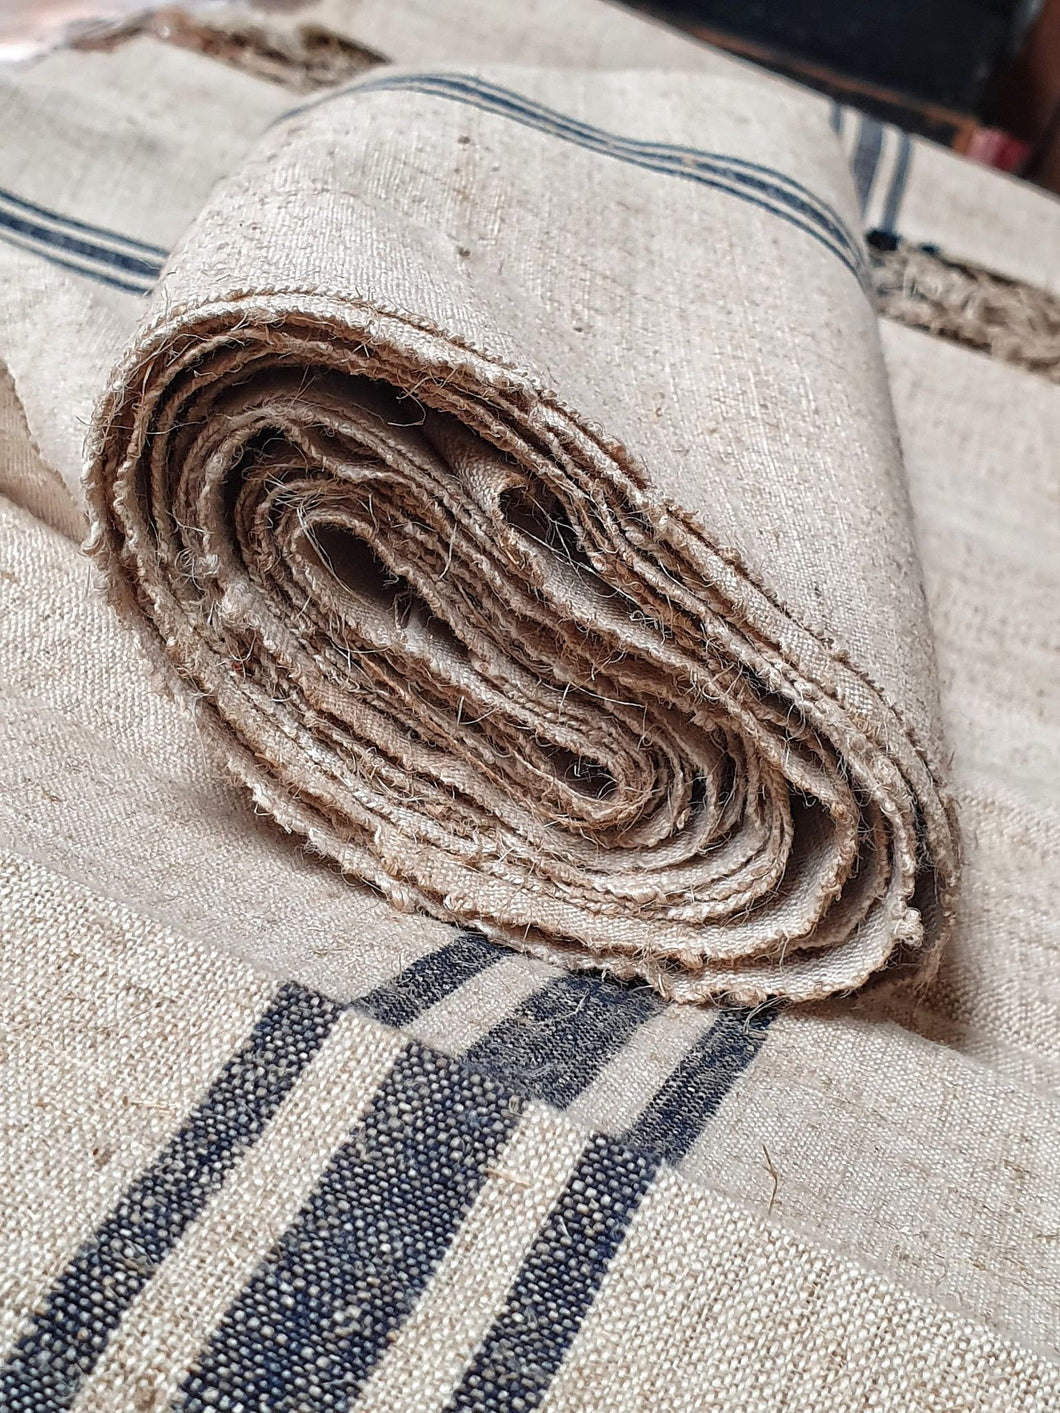 Hungarian Vintage Hand-Woven Linen